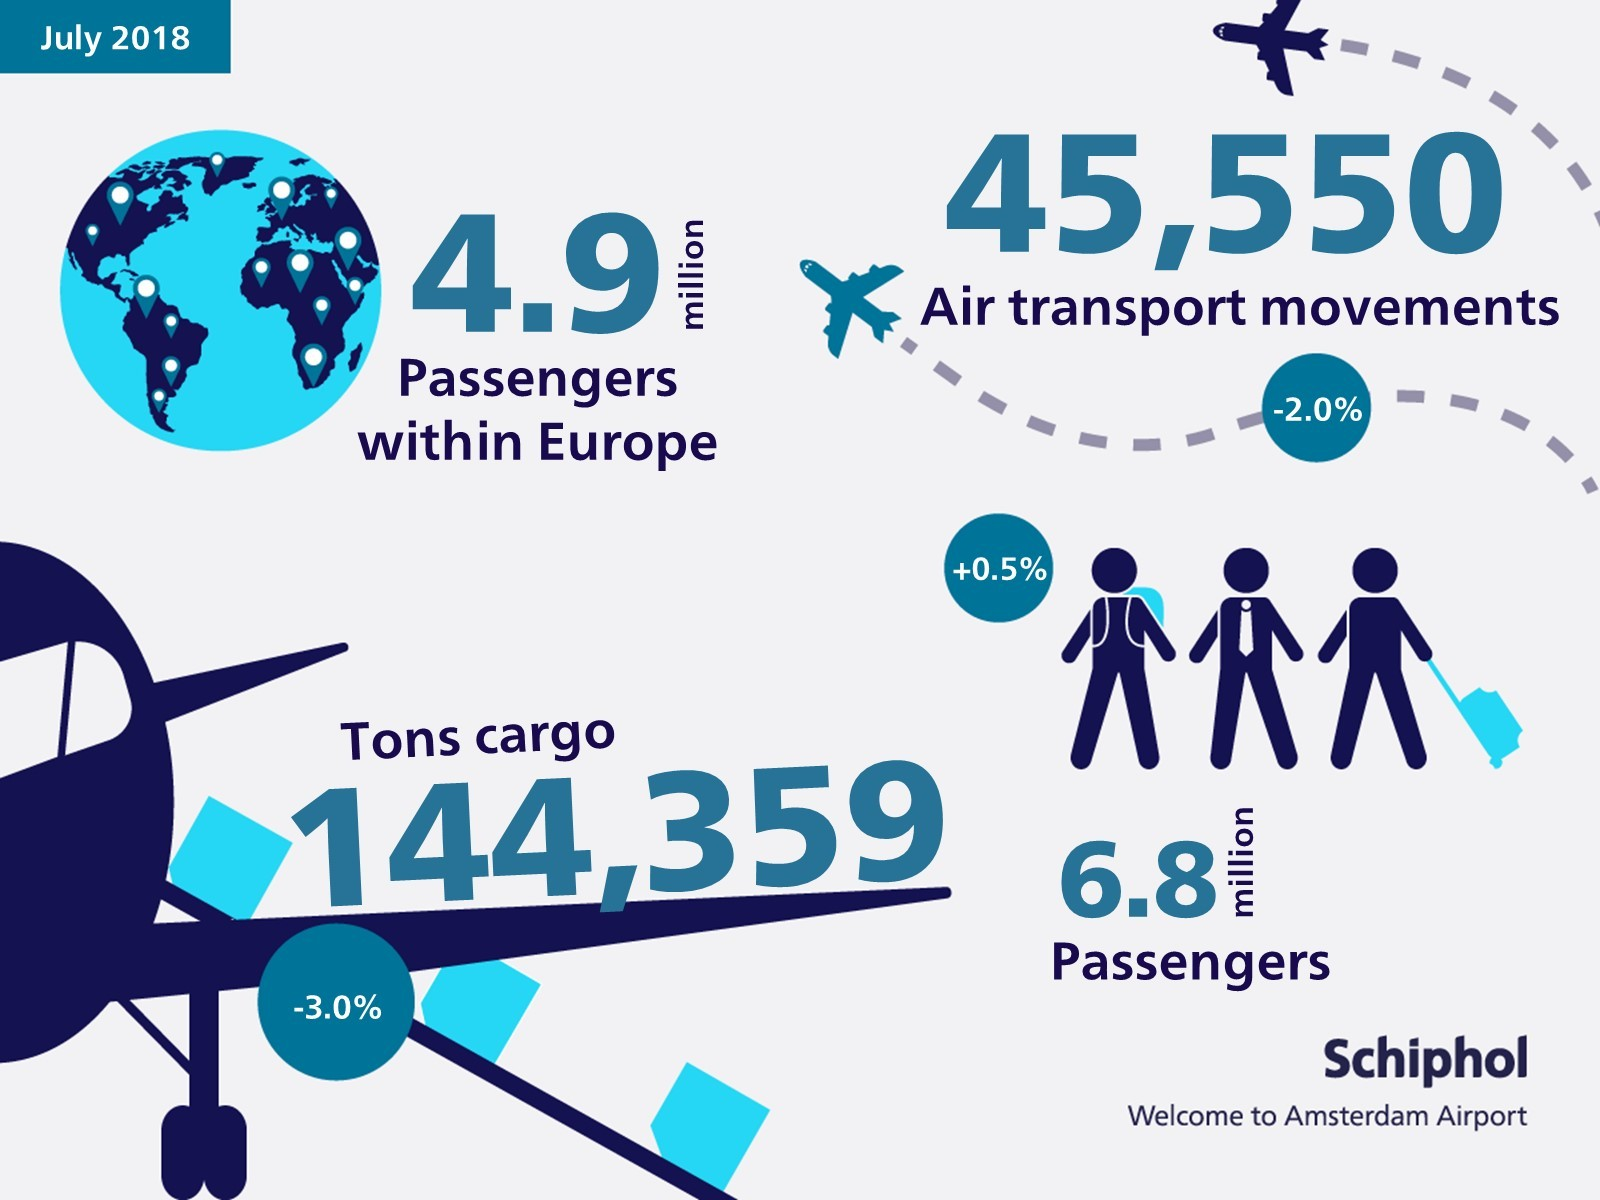 Traffic and transport figures for July 2018